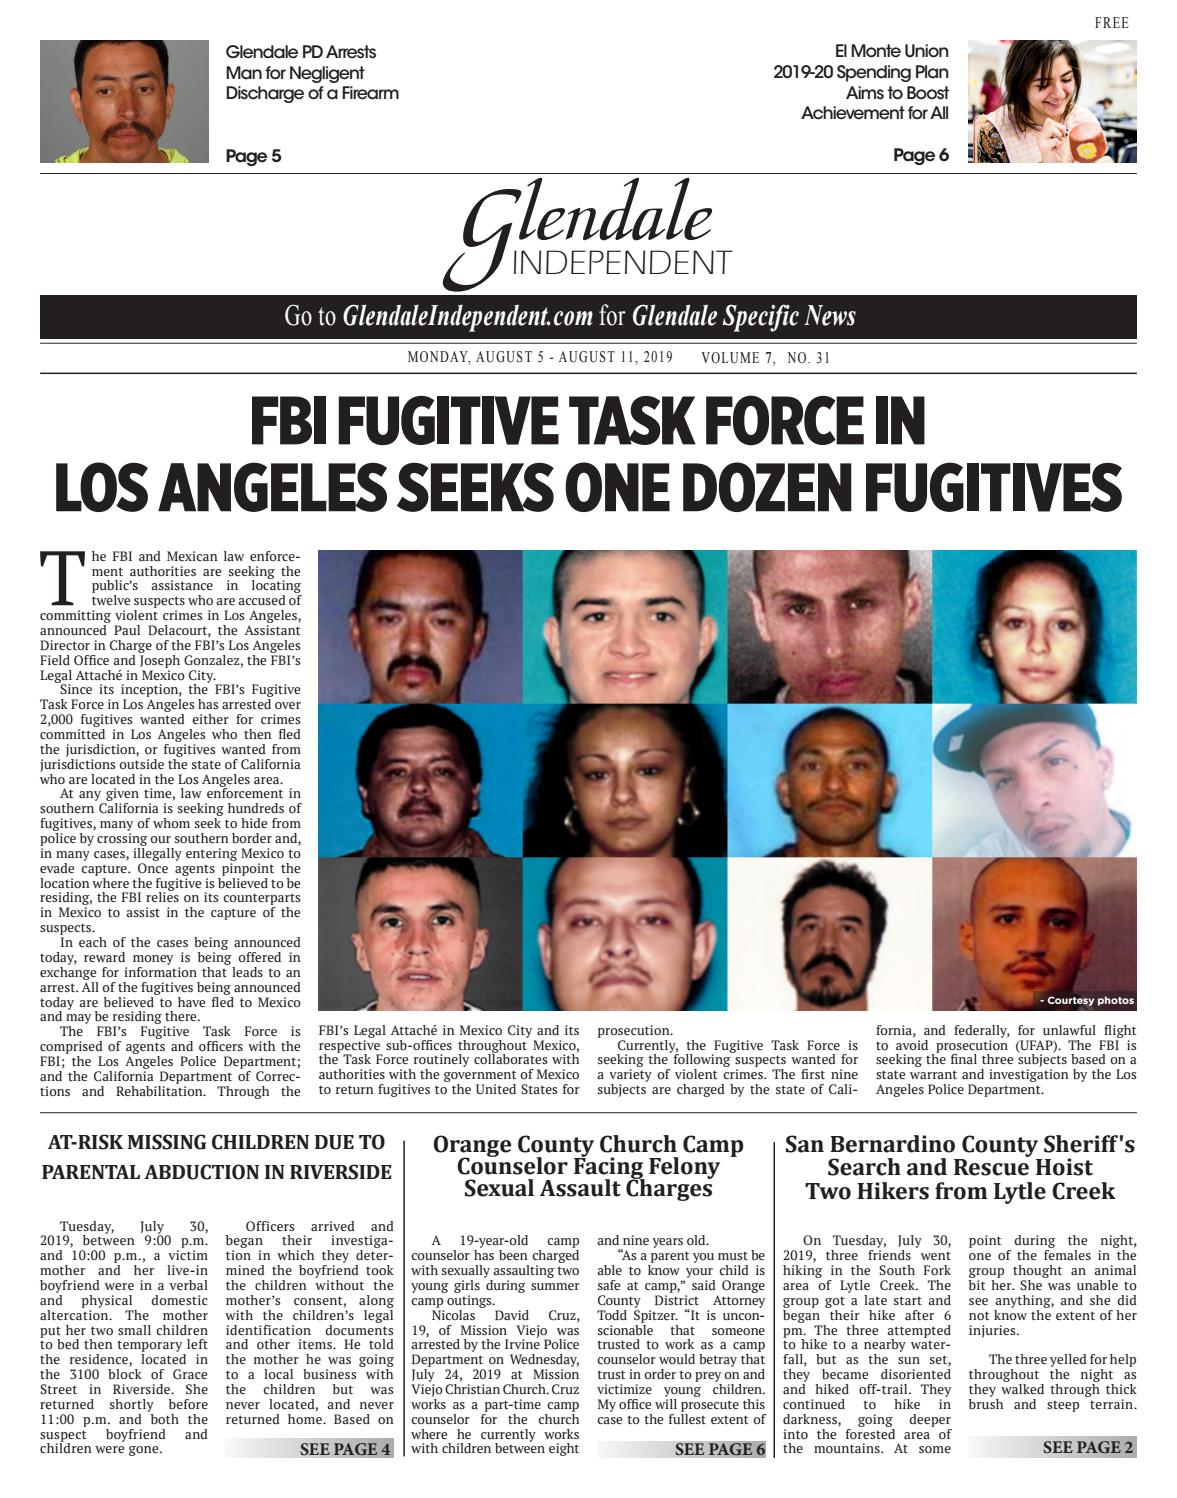 Glendale Independent - 08/05/2019 by Beacon Media News - issuu